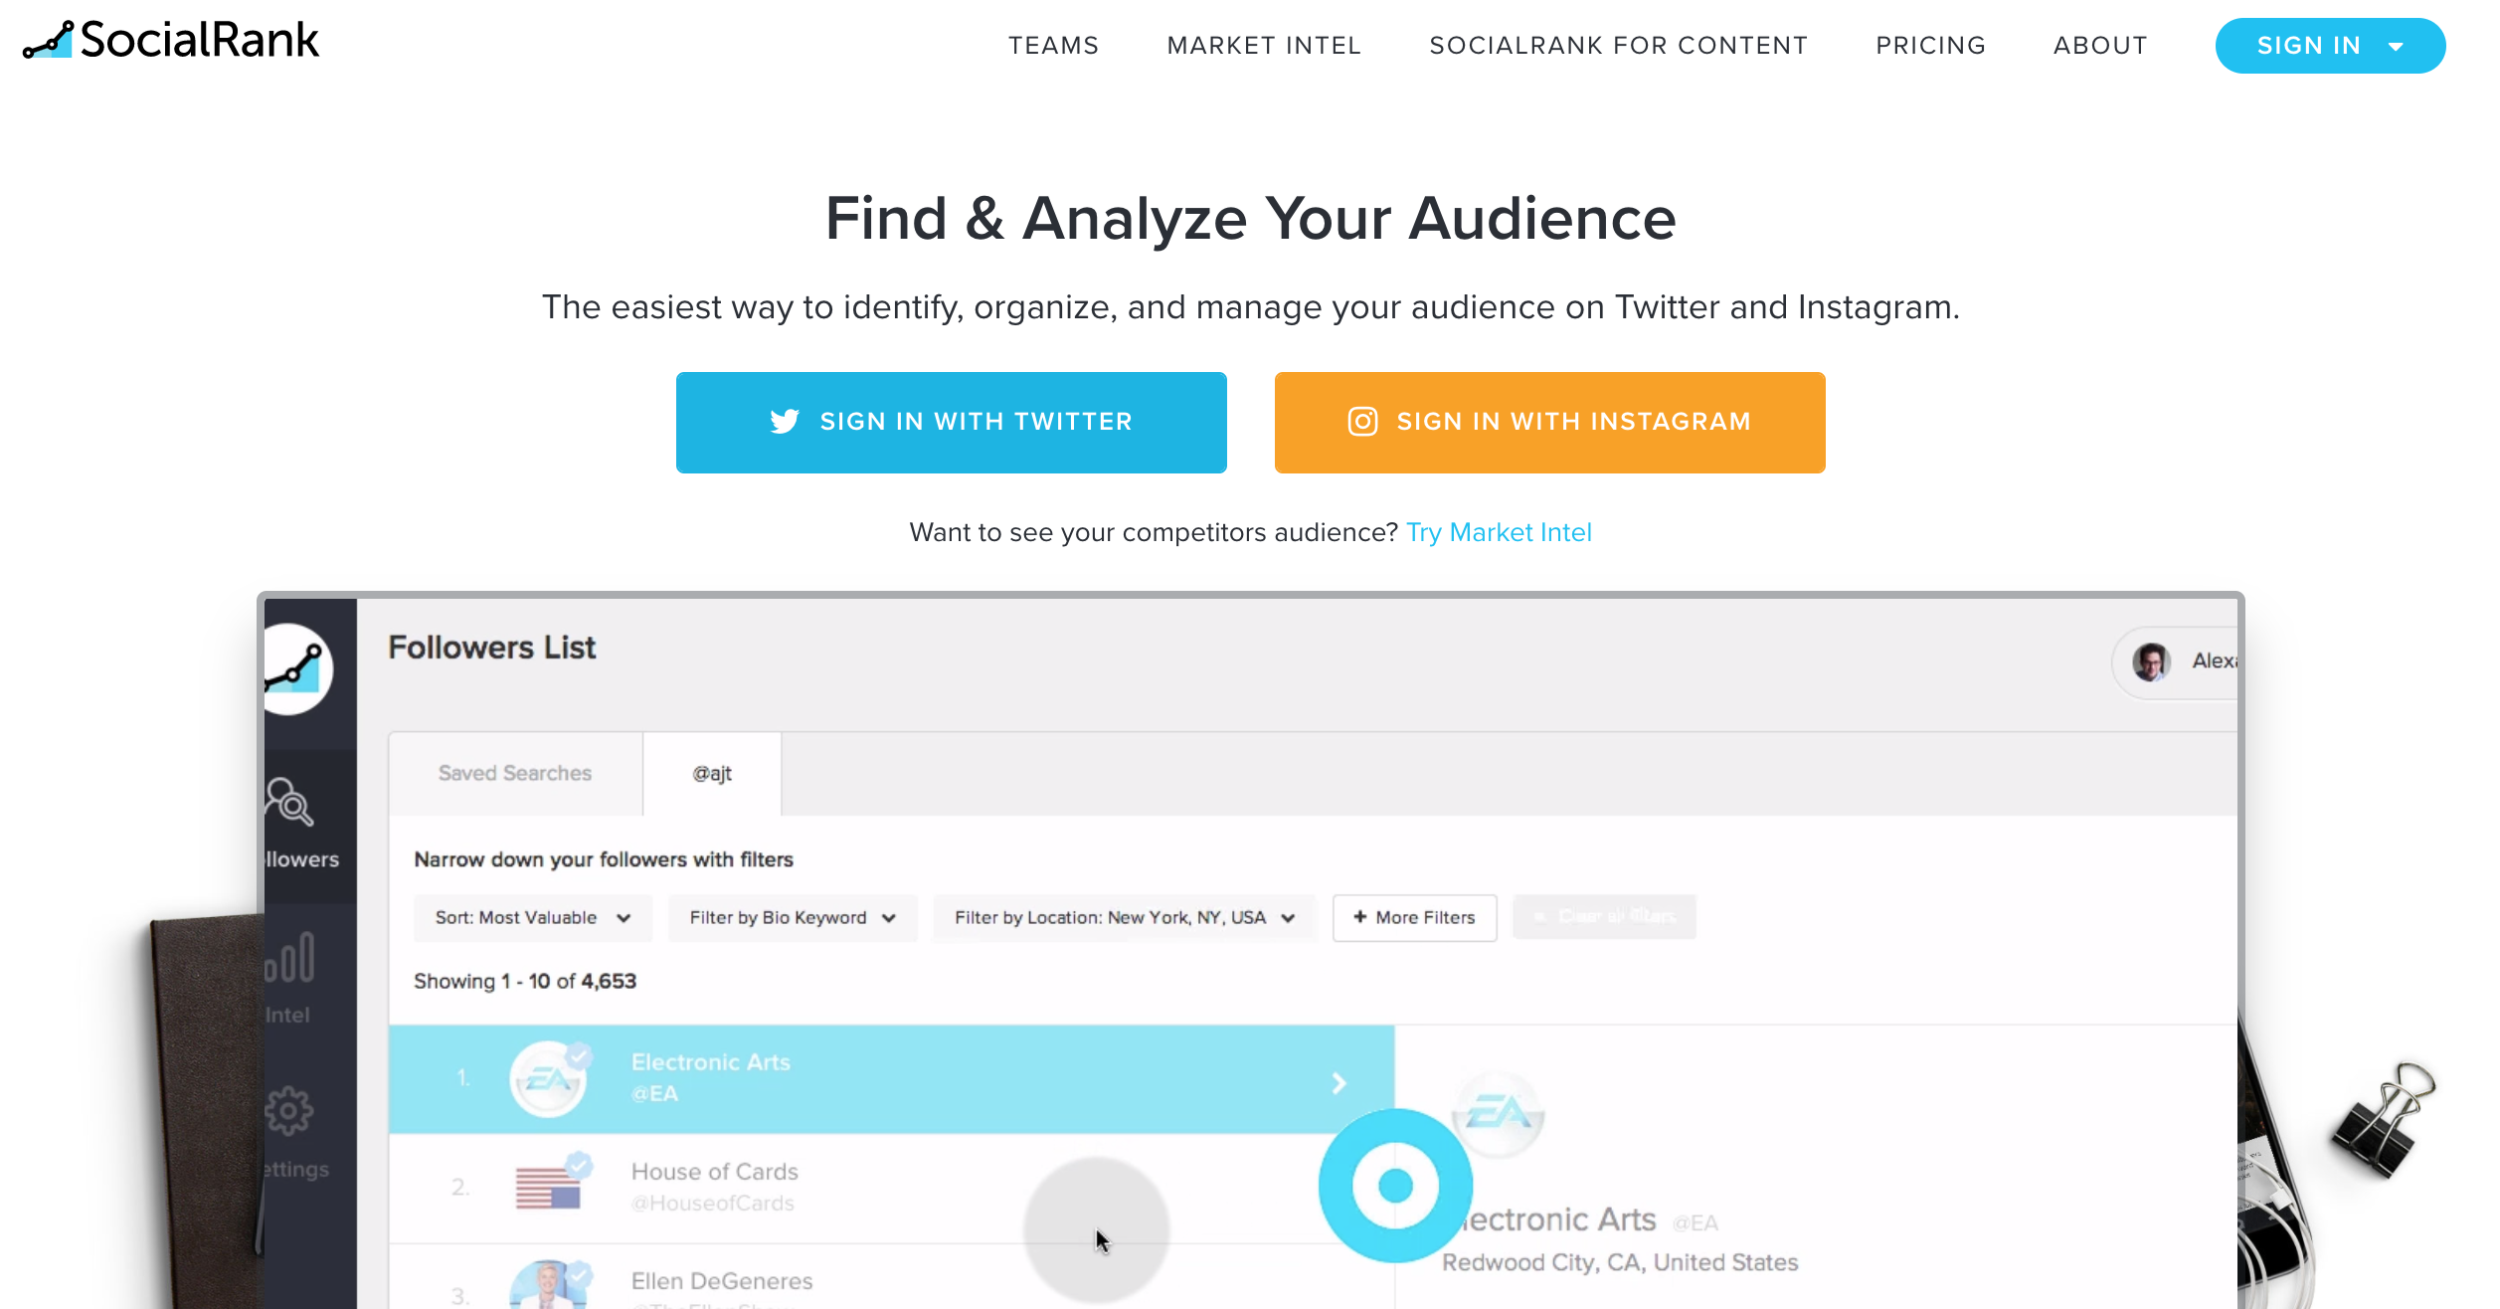 socialrank - instagram analytics tools